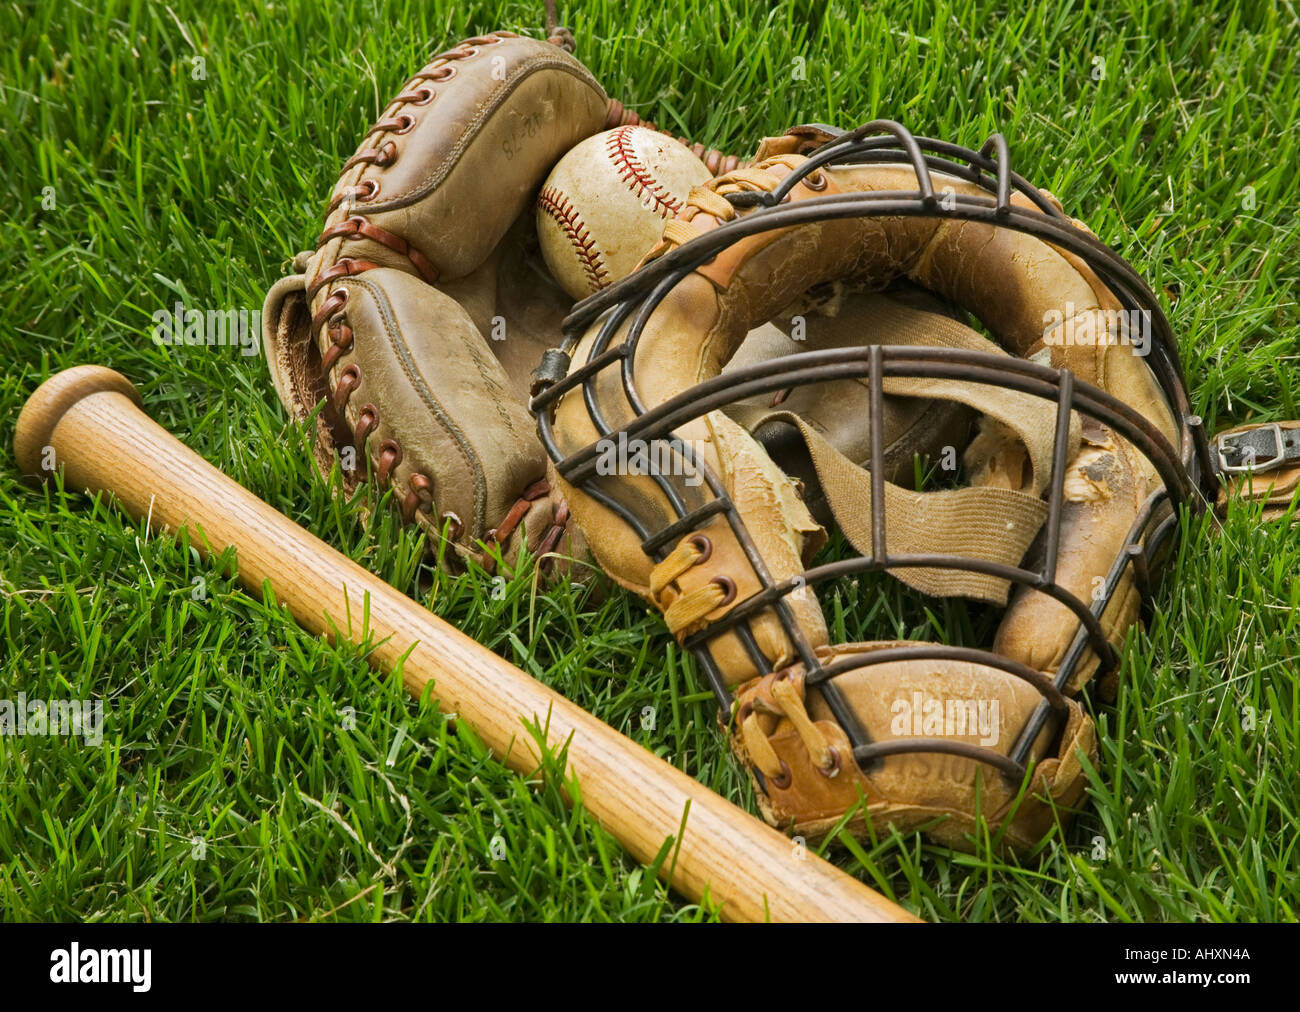 Old fashioned baseball equipment in grass - Stock Image